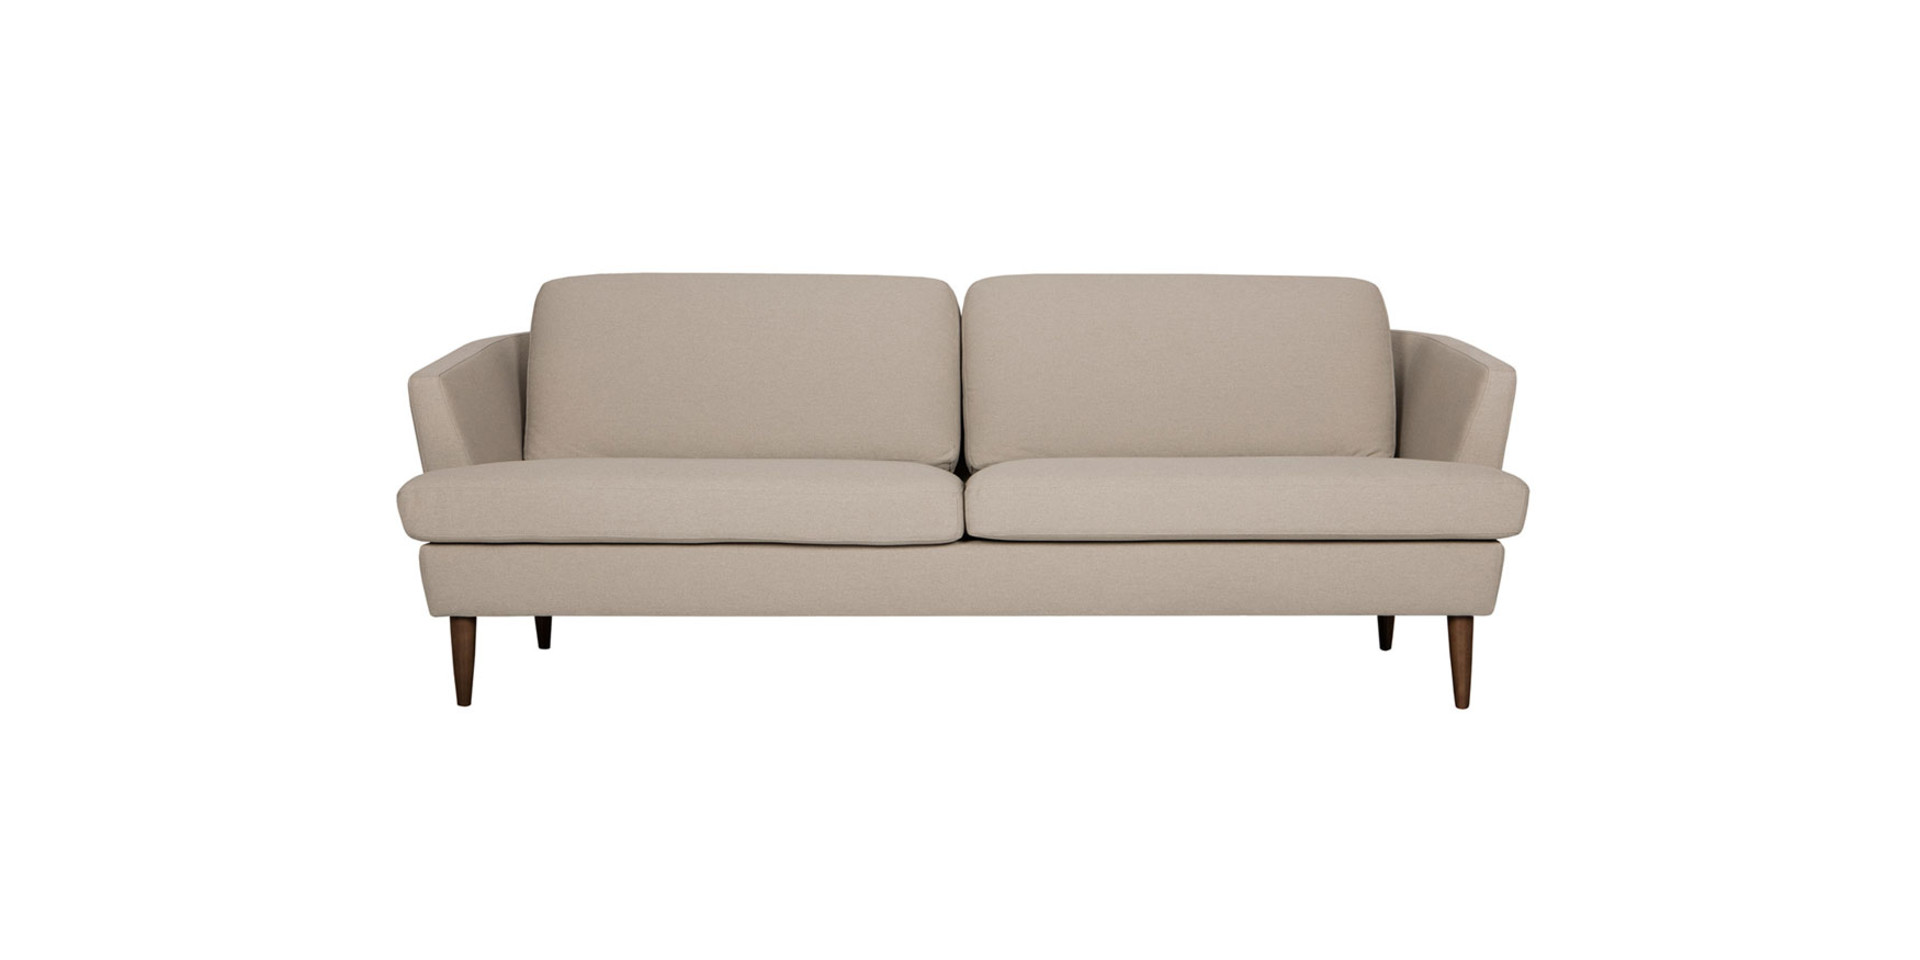 sits-timjan-canape-3seater_luis4_beige_1